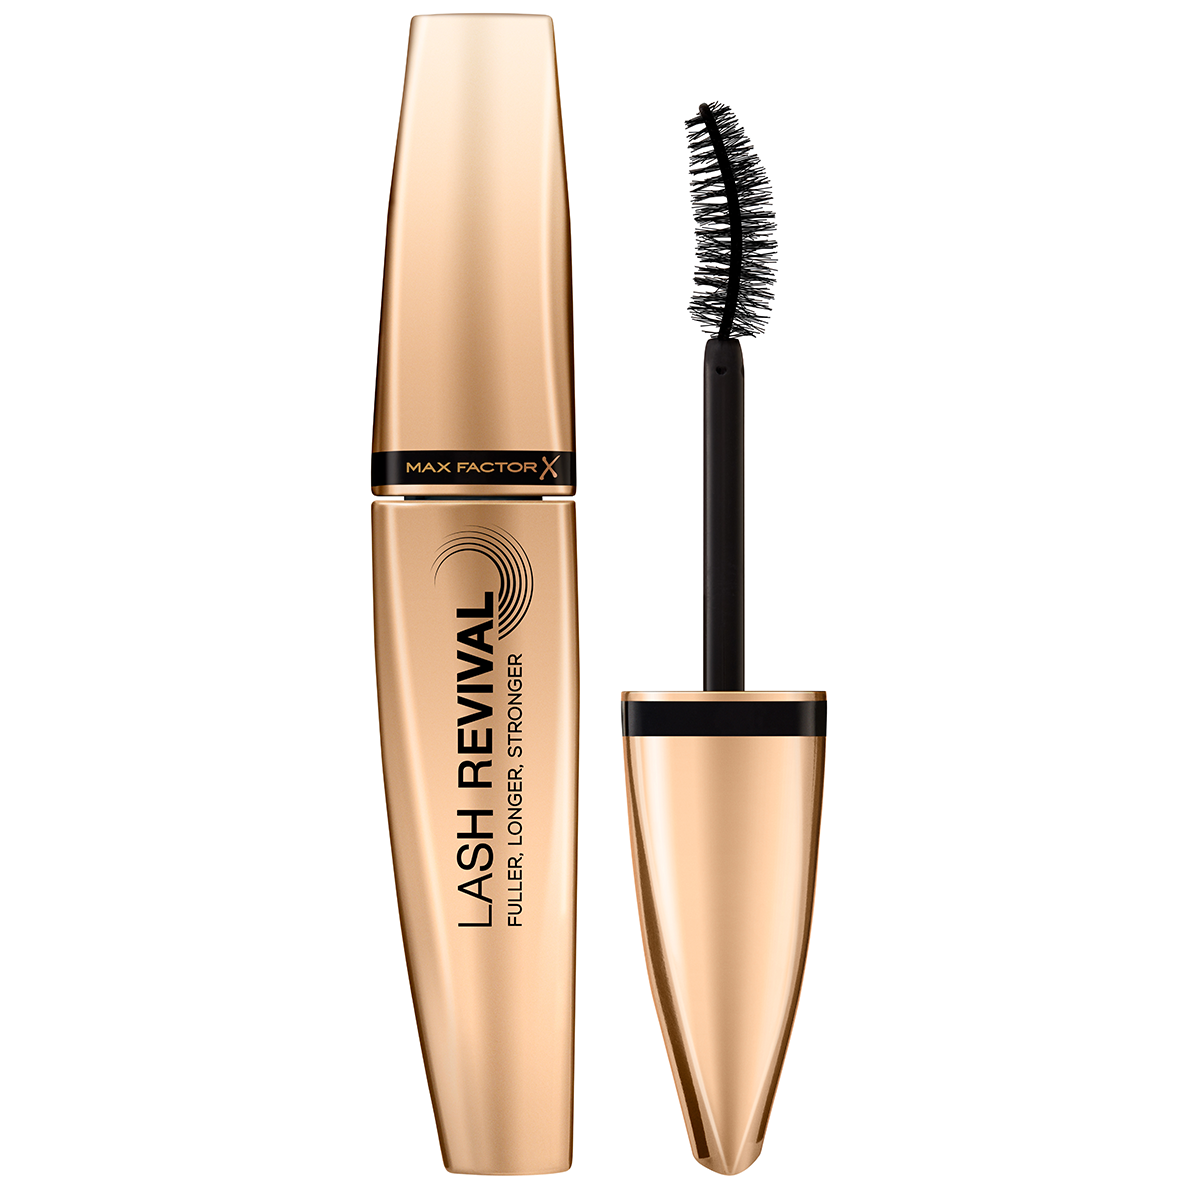 LASH REVIVAL MASCARA BLACK packshot open